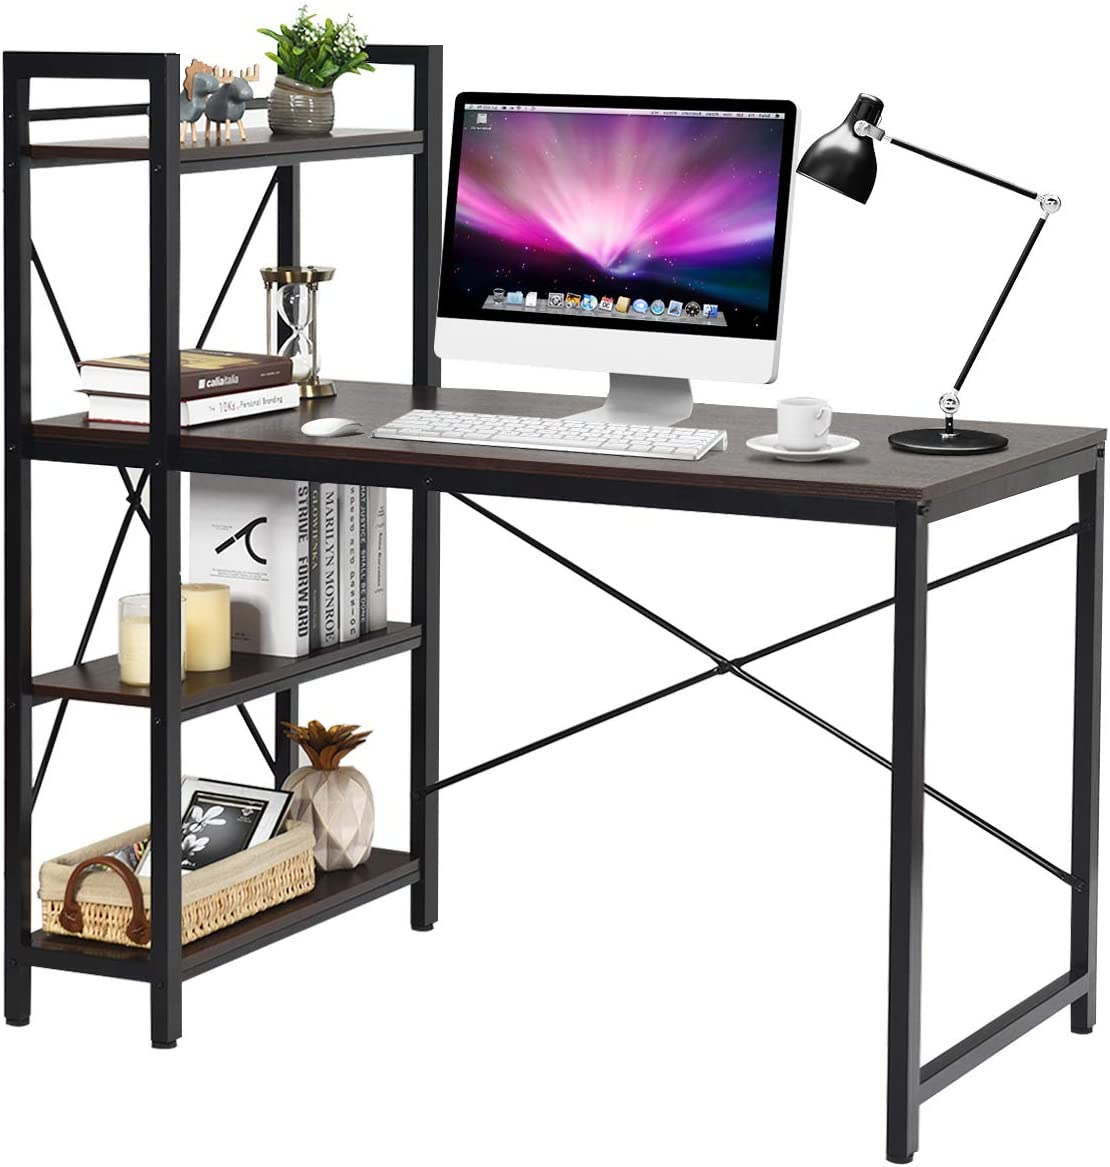 Tangkula 47.5 Computer Desk, Modern Style Writing Study Table with 4 Tier Bookshelves, Home Office Desk, Compact Gaming Desk, Multipurpose PC Workstation Brown